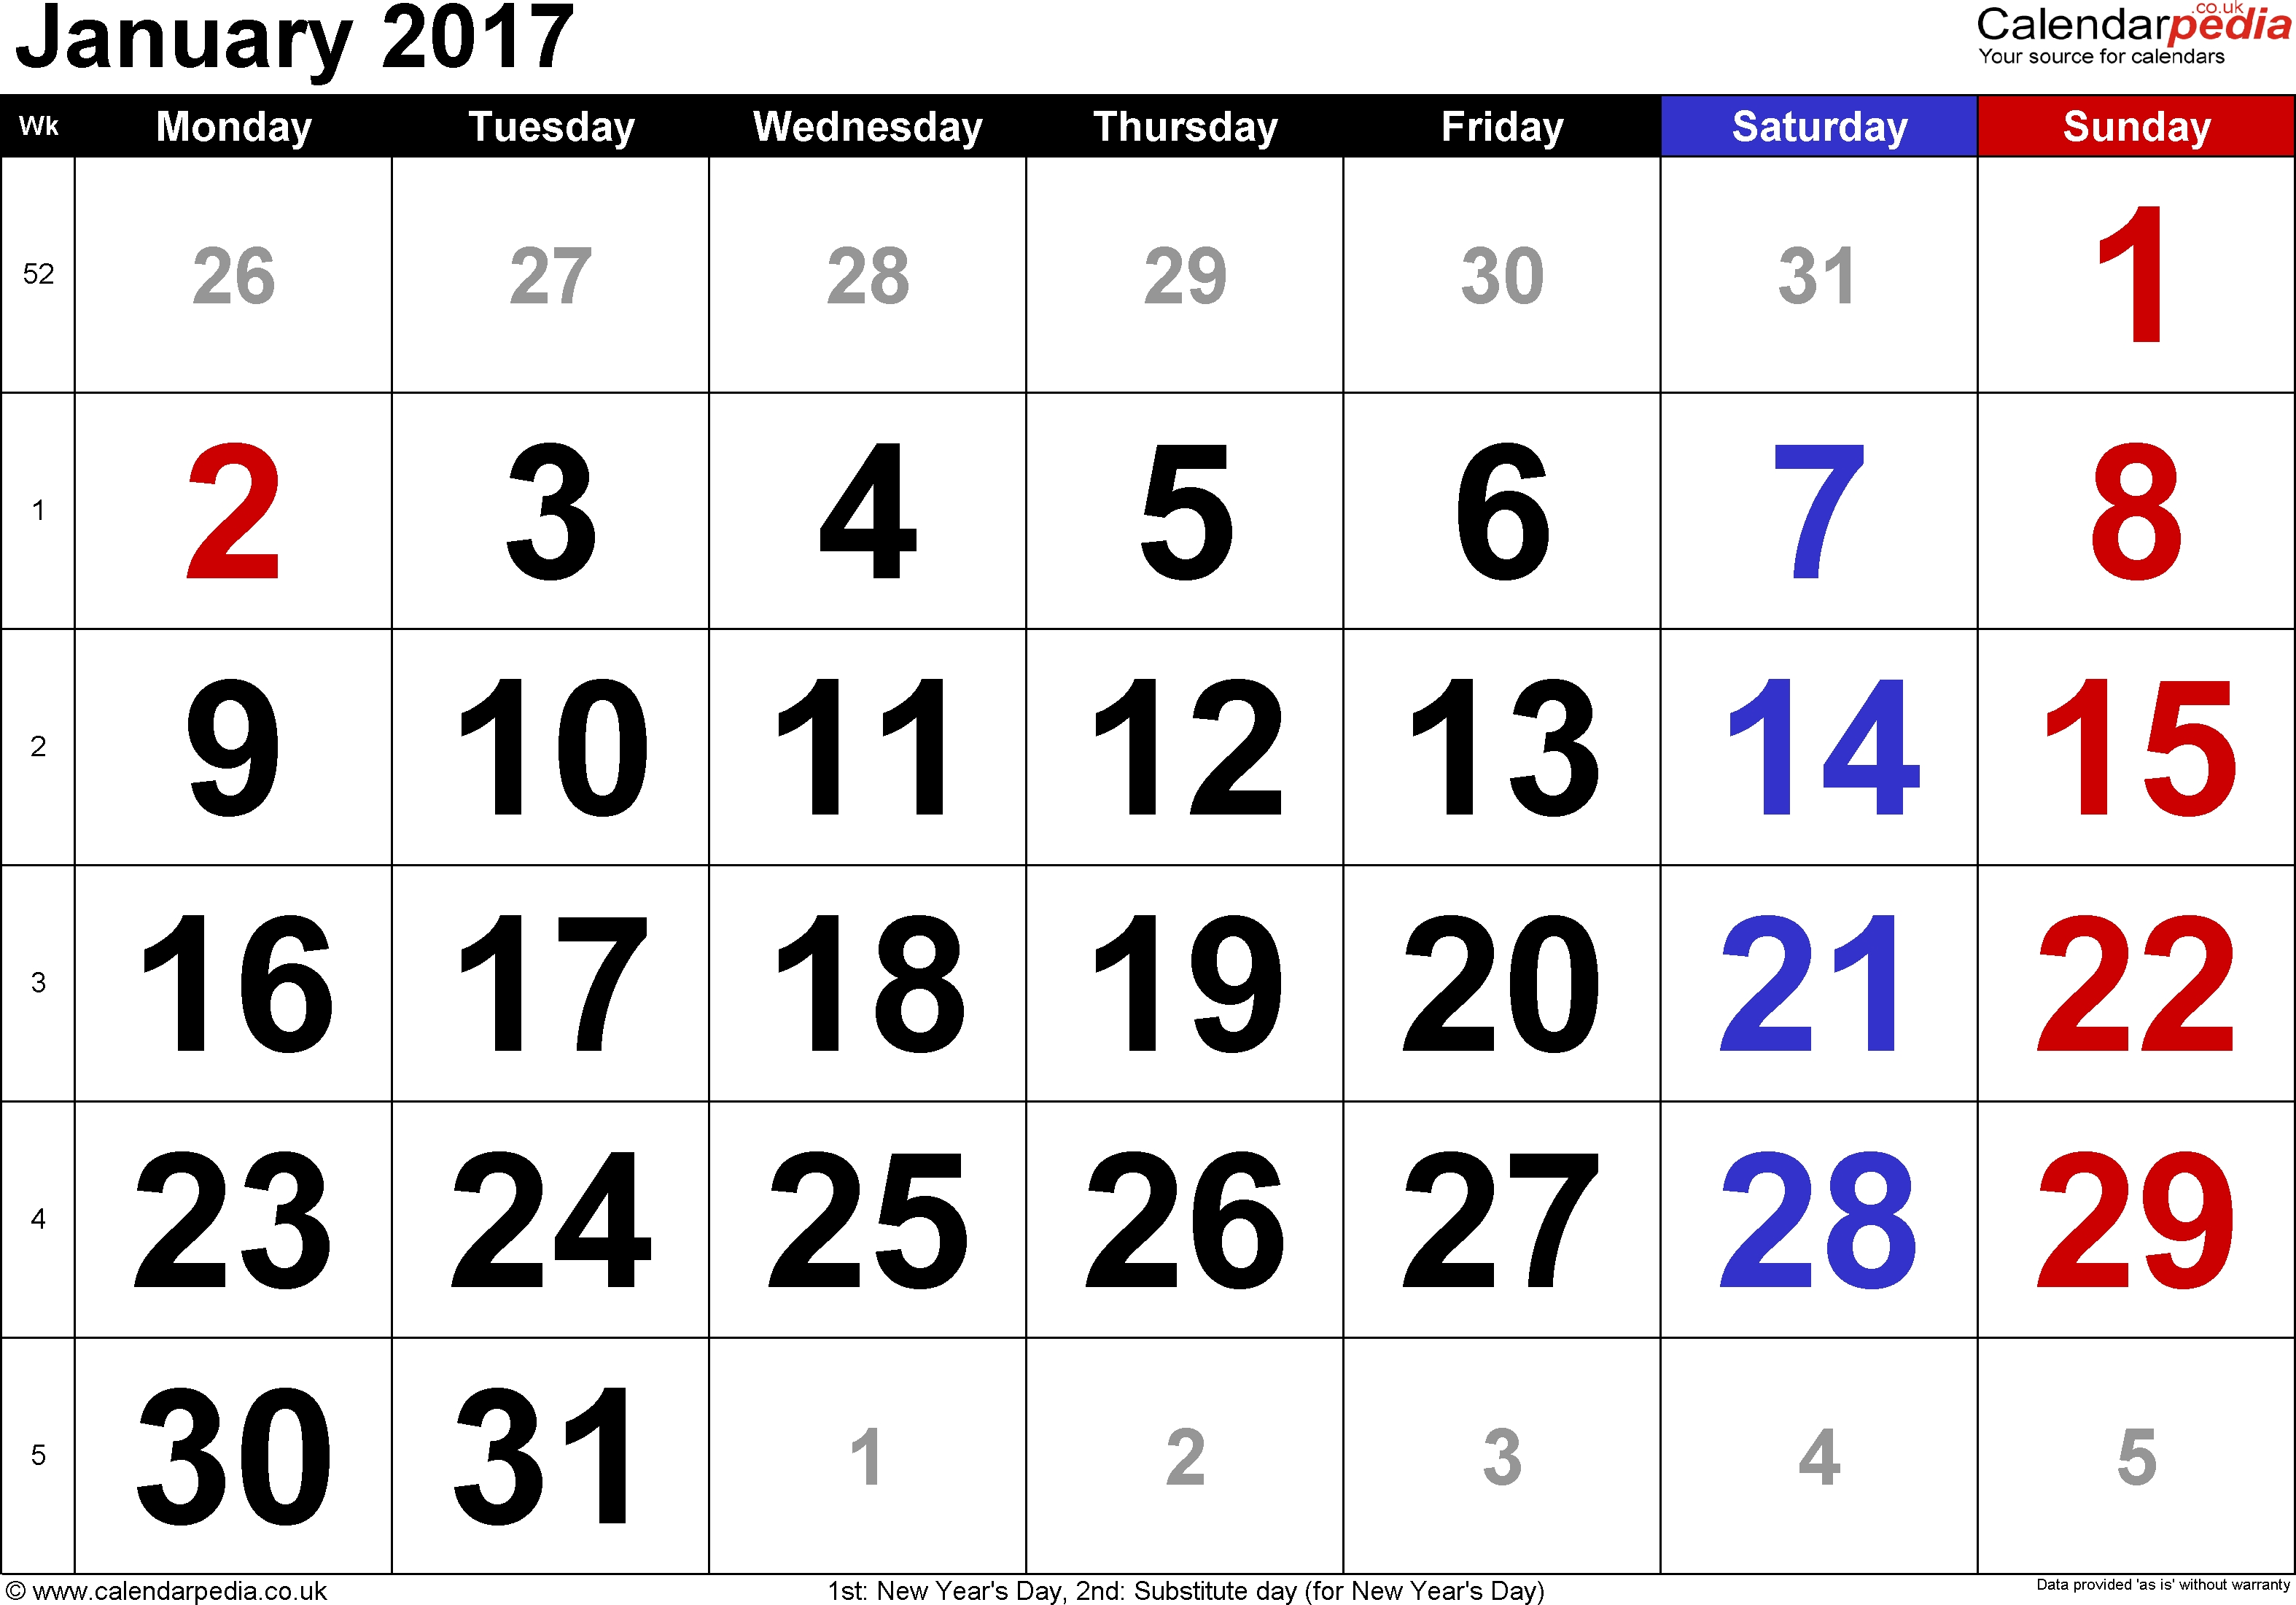 Calendar January 2017 Uk, Bank Holidays, Excel/pdf/word